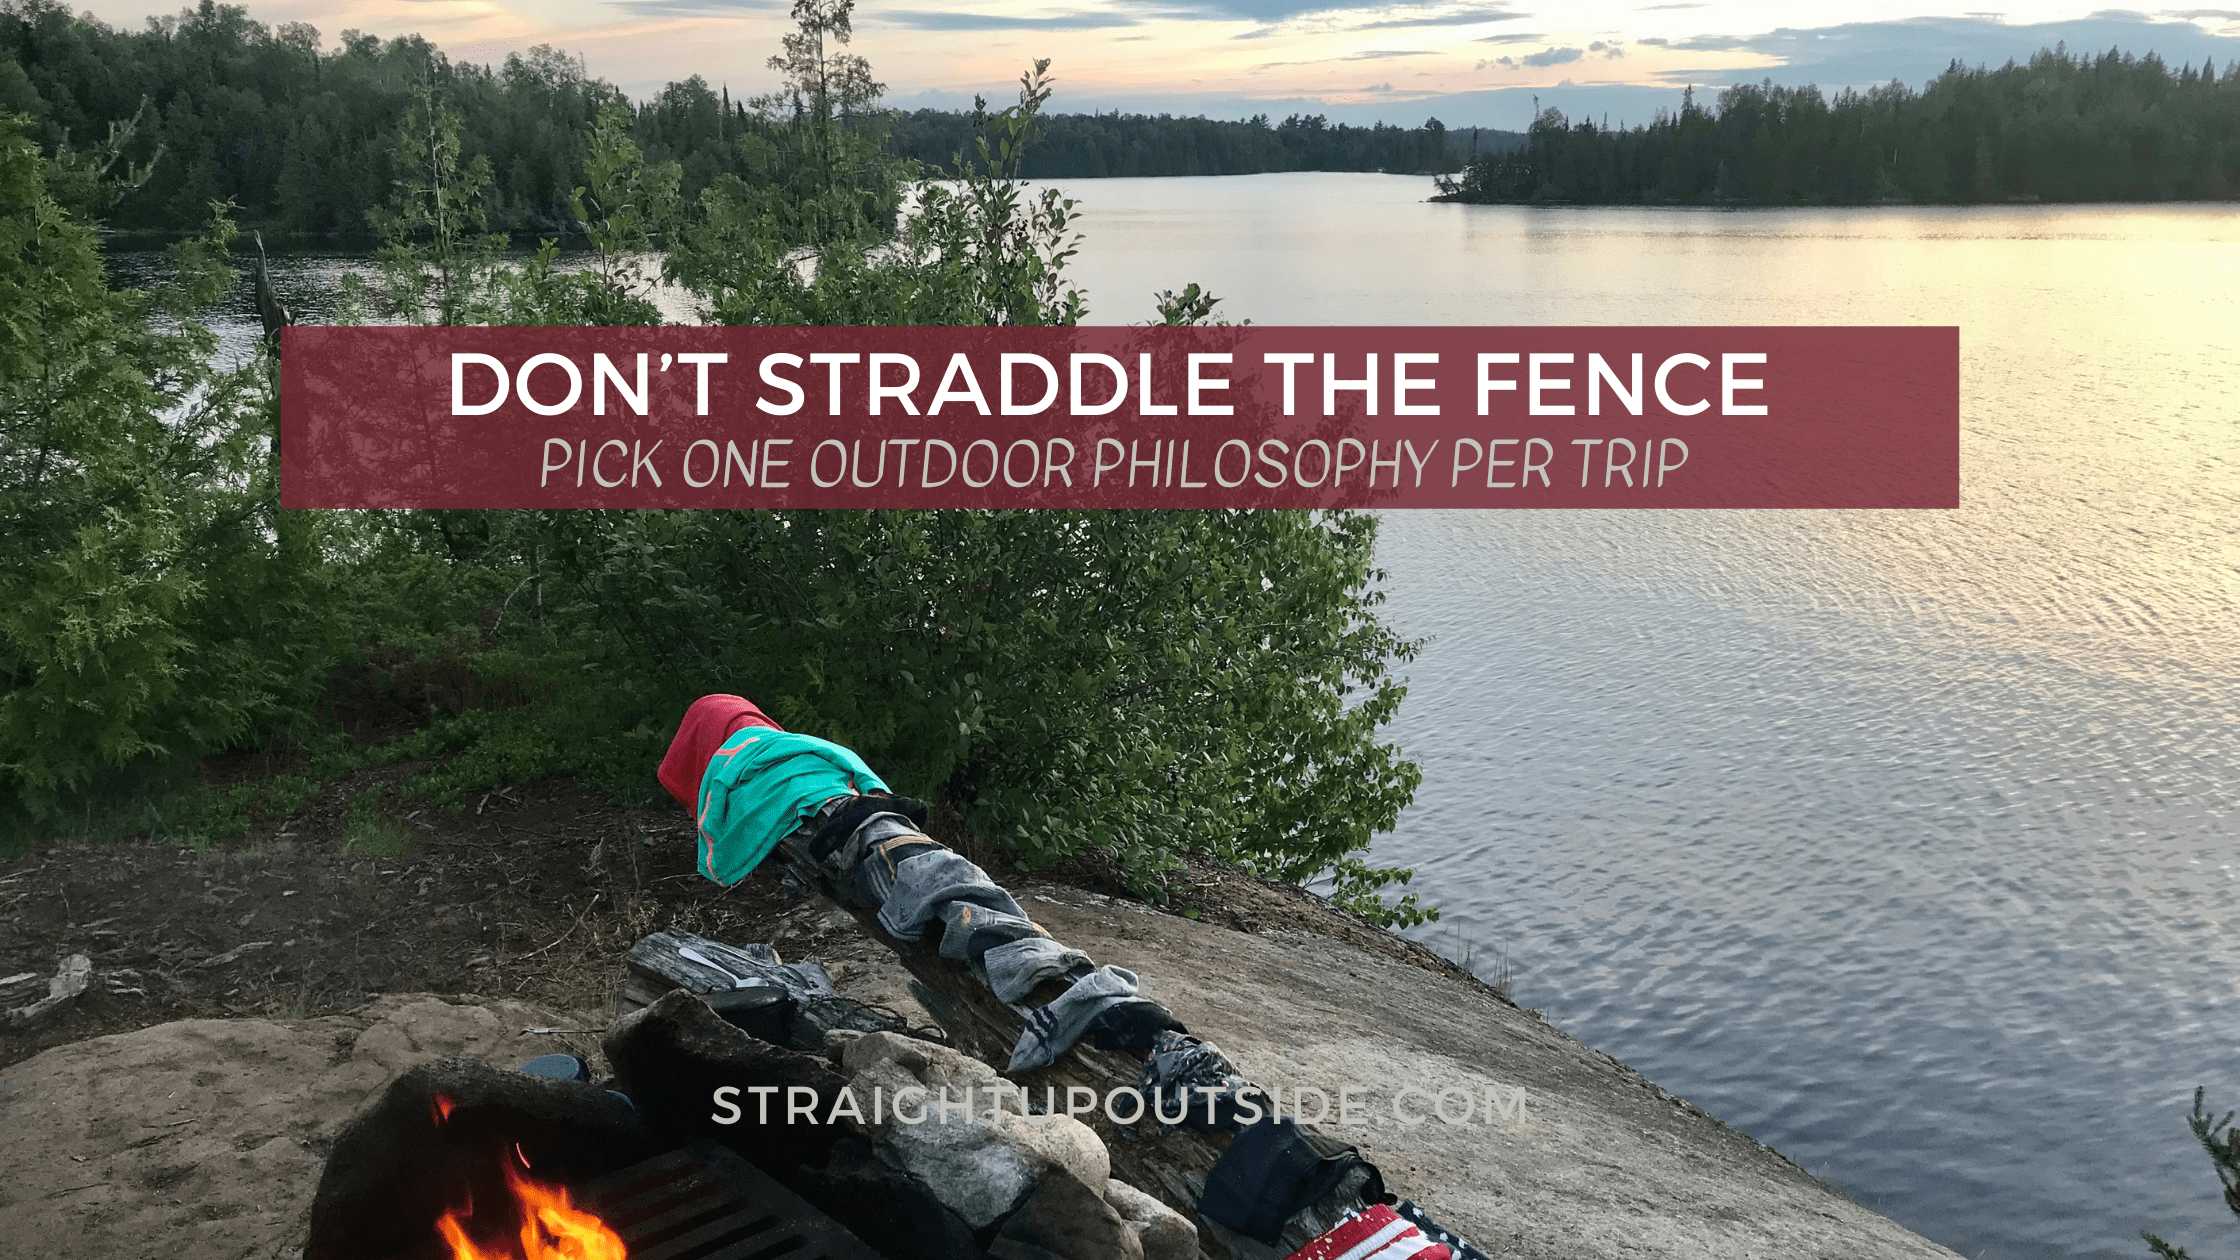 Don't Straddle the Fence